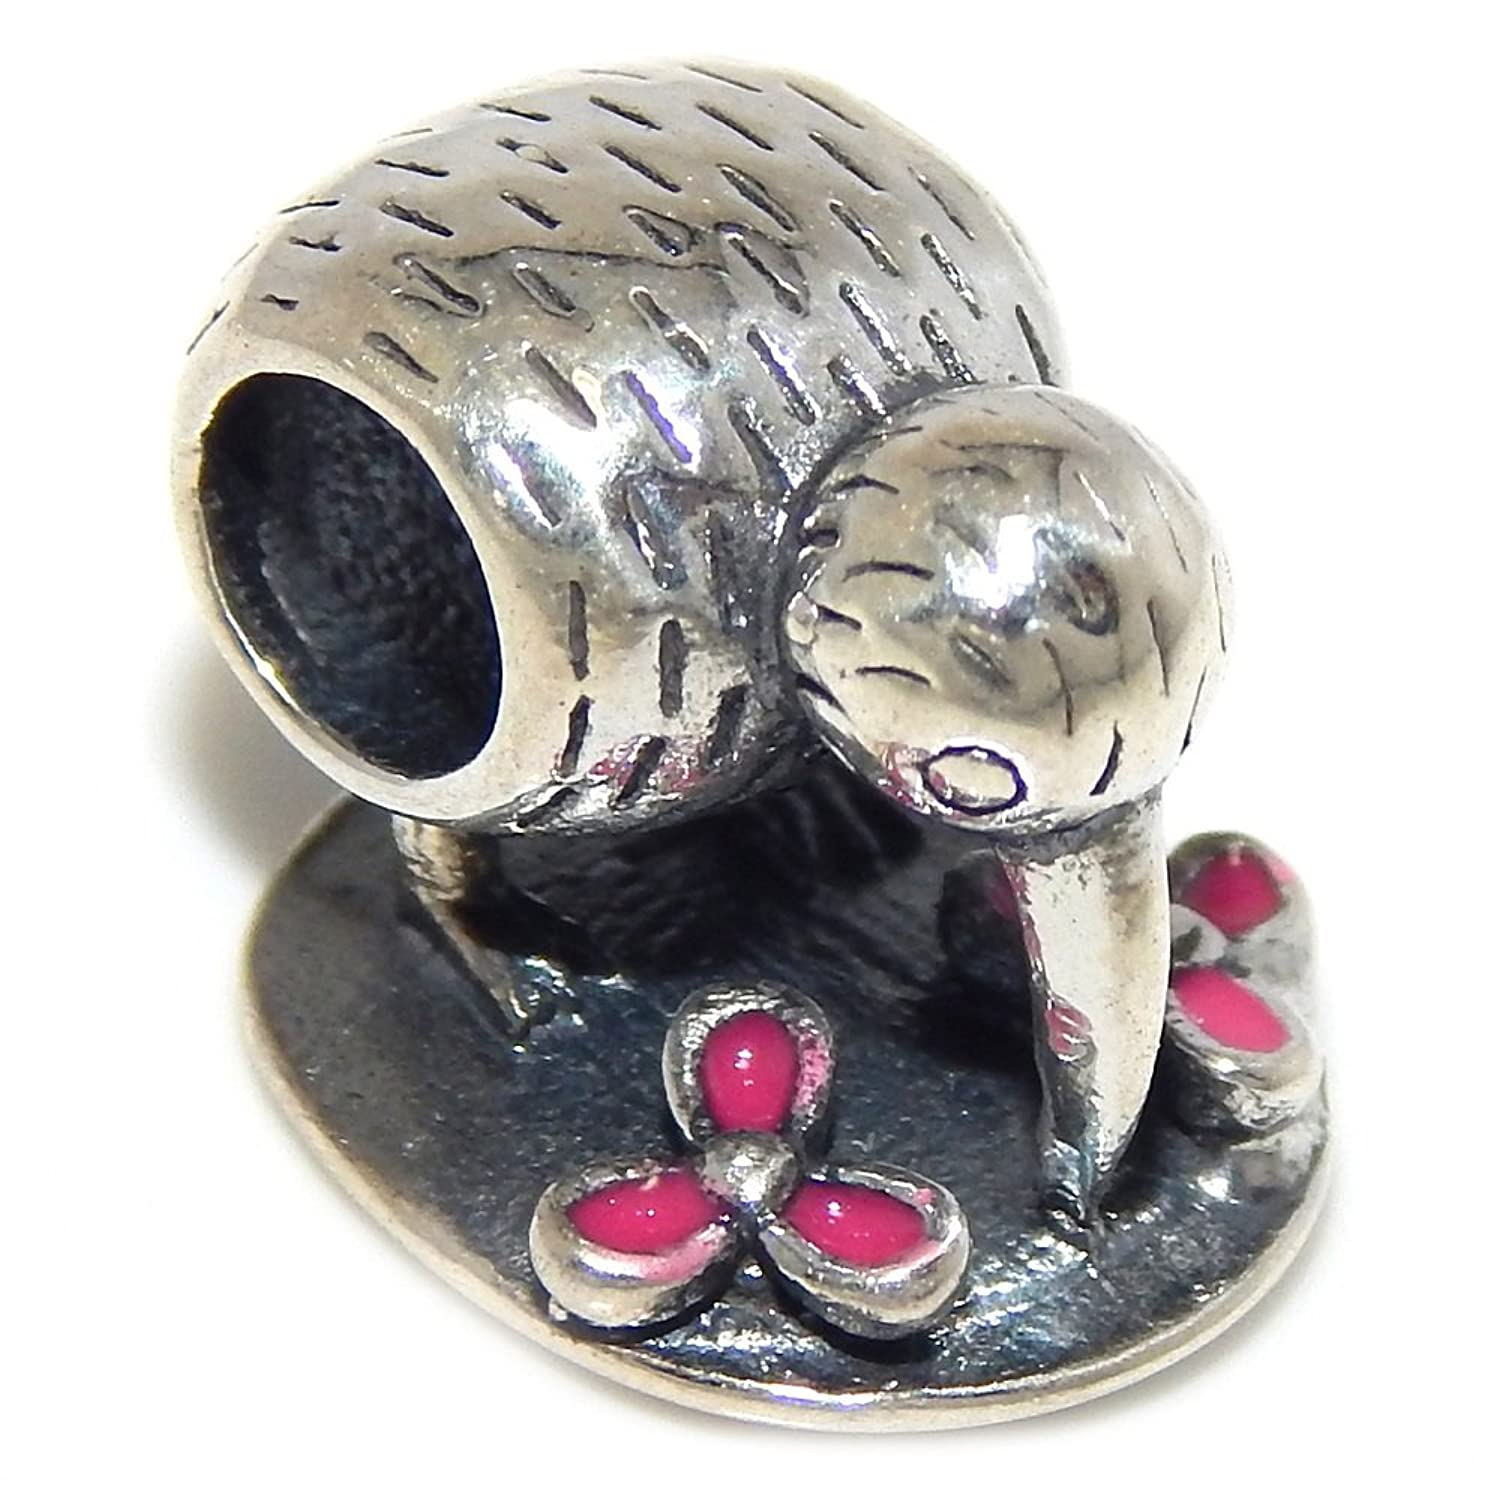 cheap Pro Jewelry 925 Solid Sterling Silver Kiwi Bird Drinking with Pink Flowers Charm Bead save more